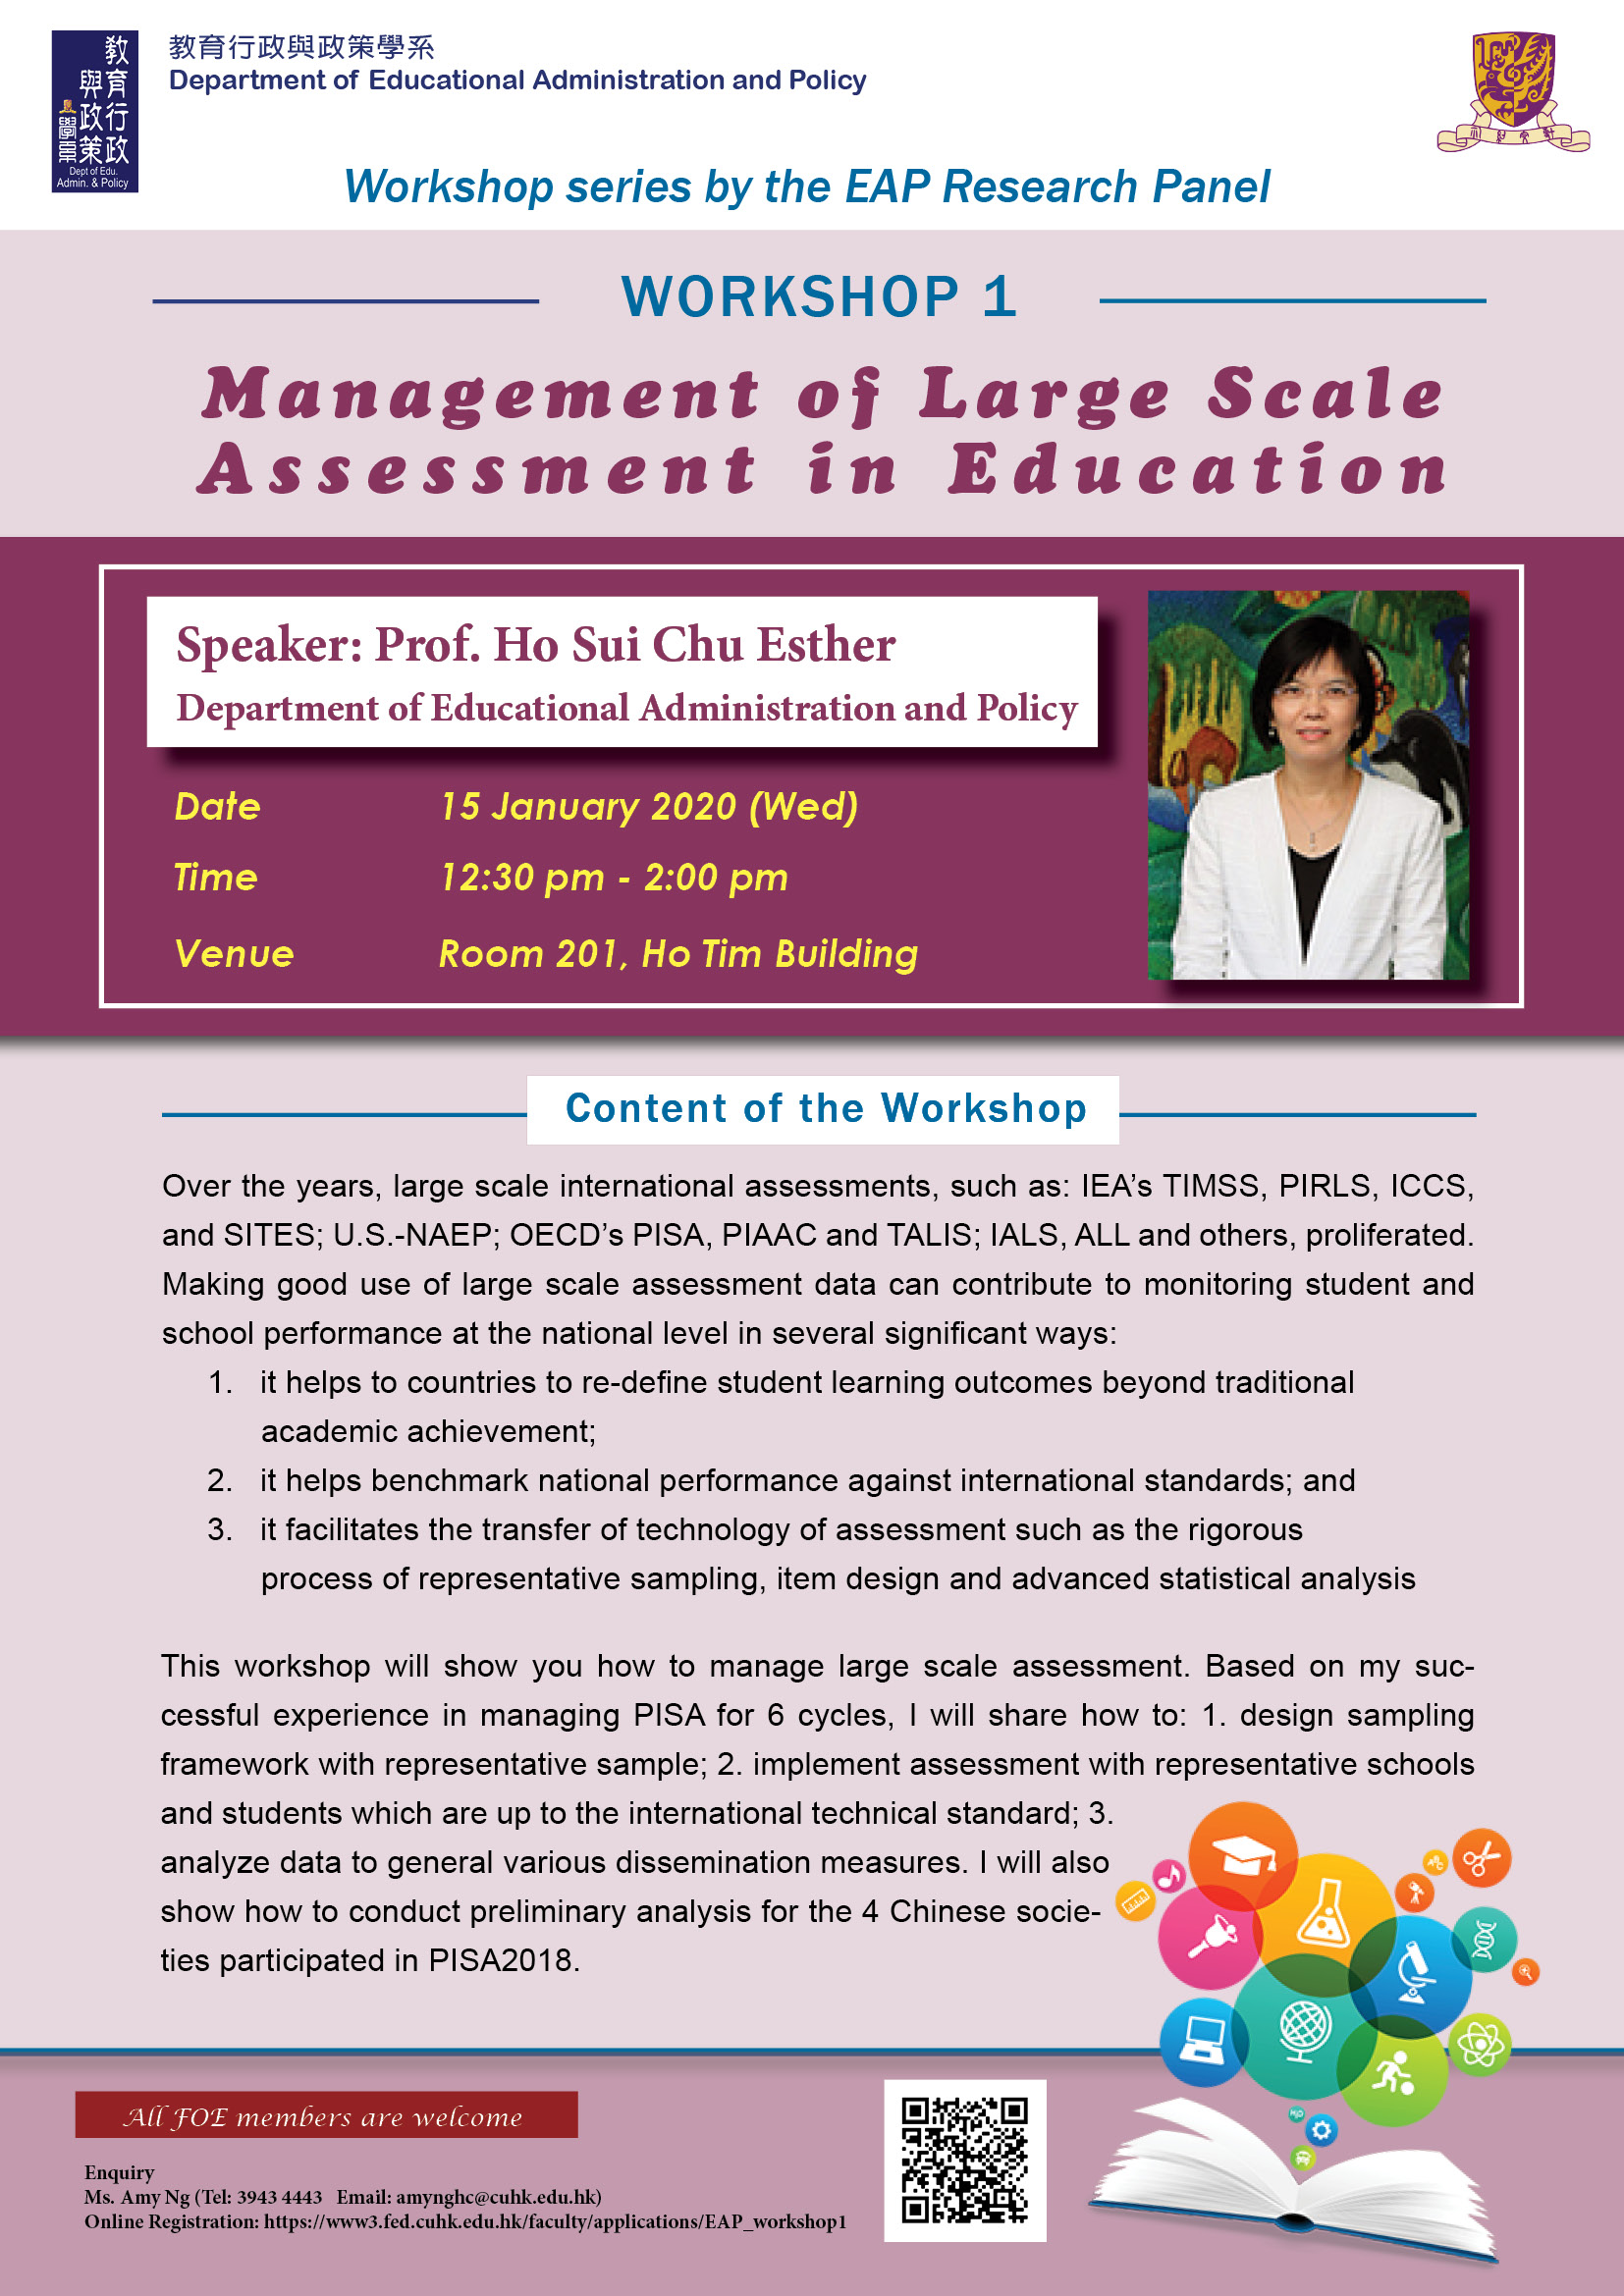 Management of Large Scale Assessment in Education